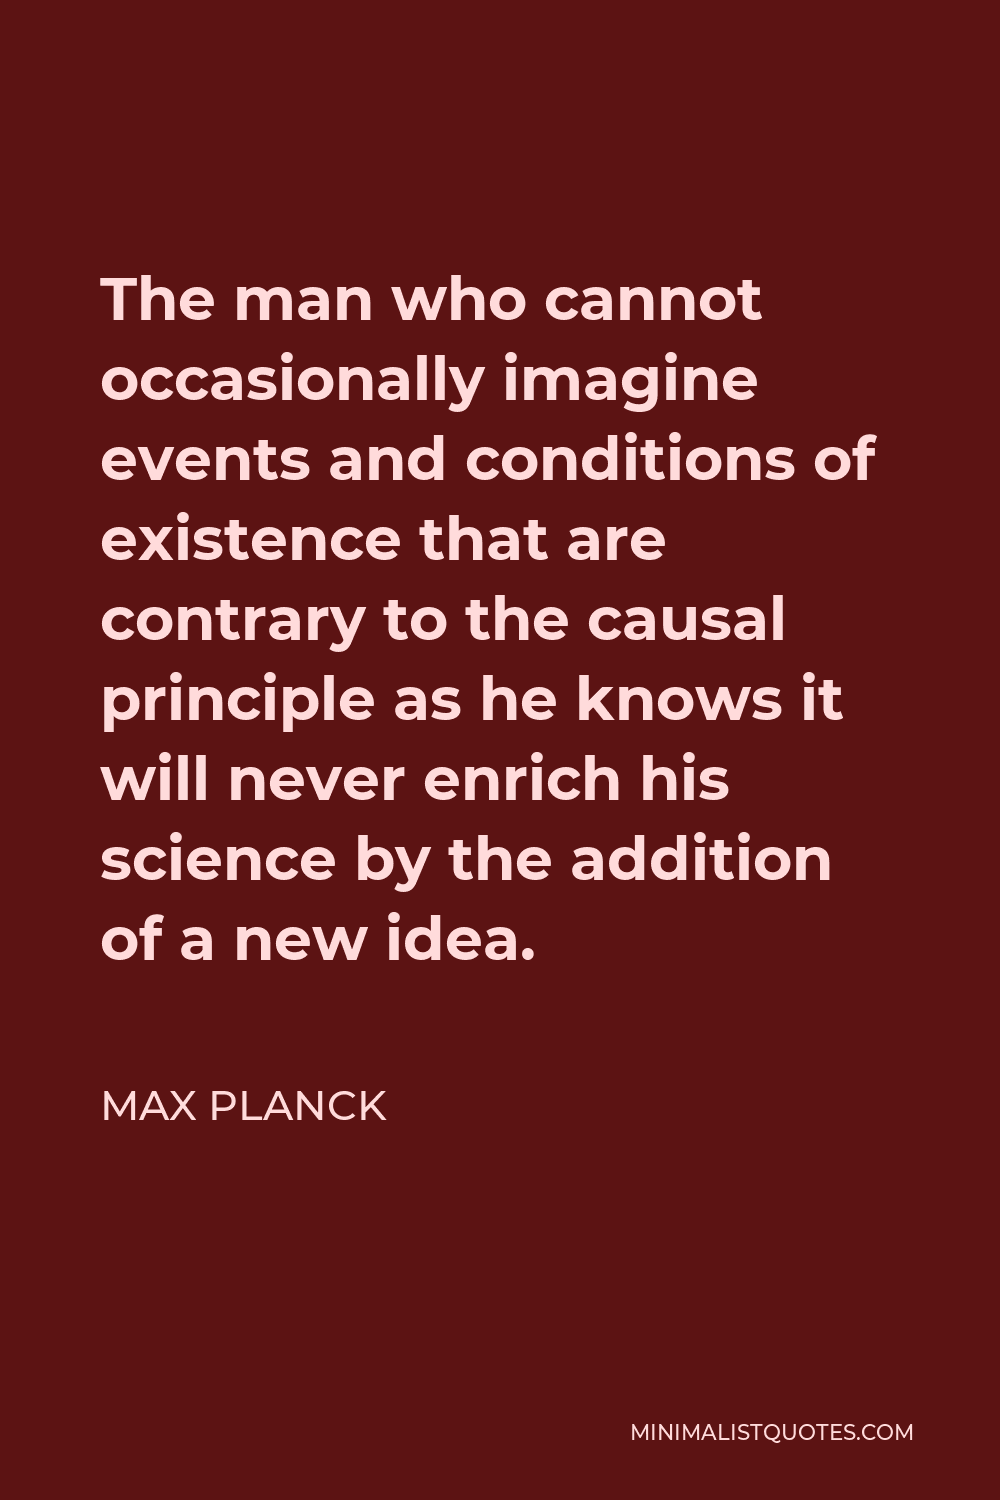 Max Planck Quote - The man who cannot occasionally imagine events and conditions of existence that are contrary to the causal principle as he knows it will never enrich his science by the addition of a new idea.